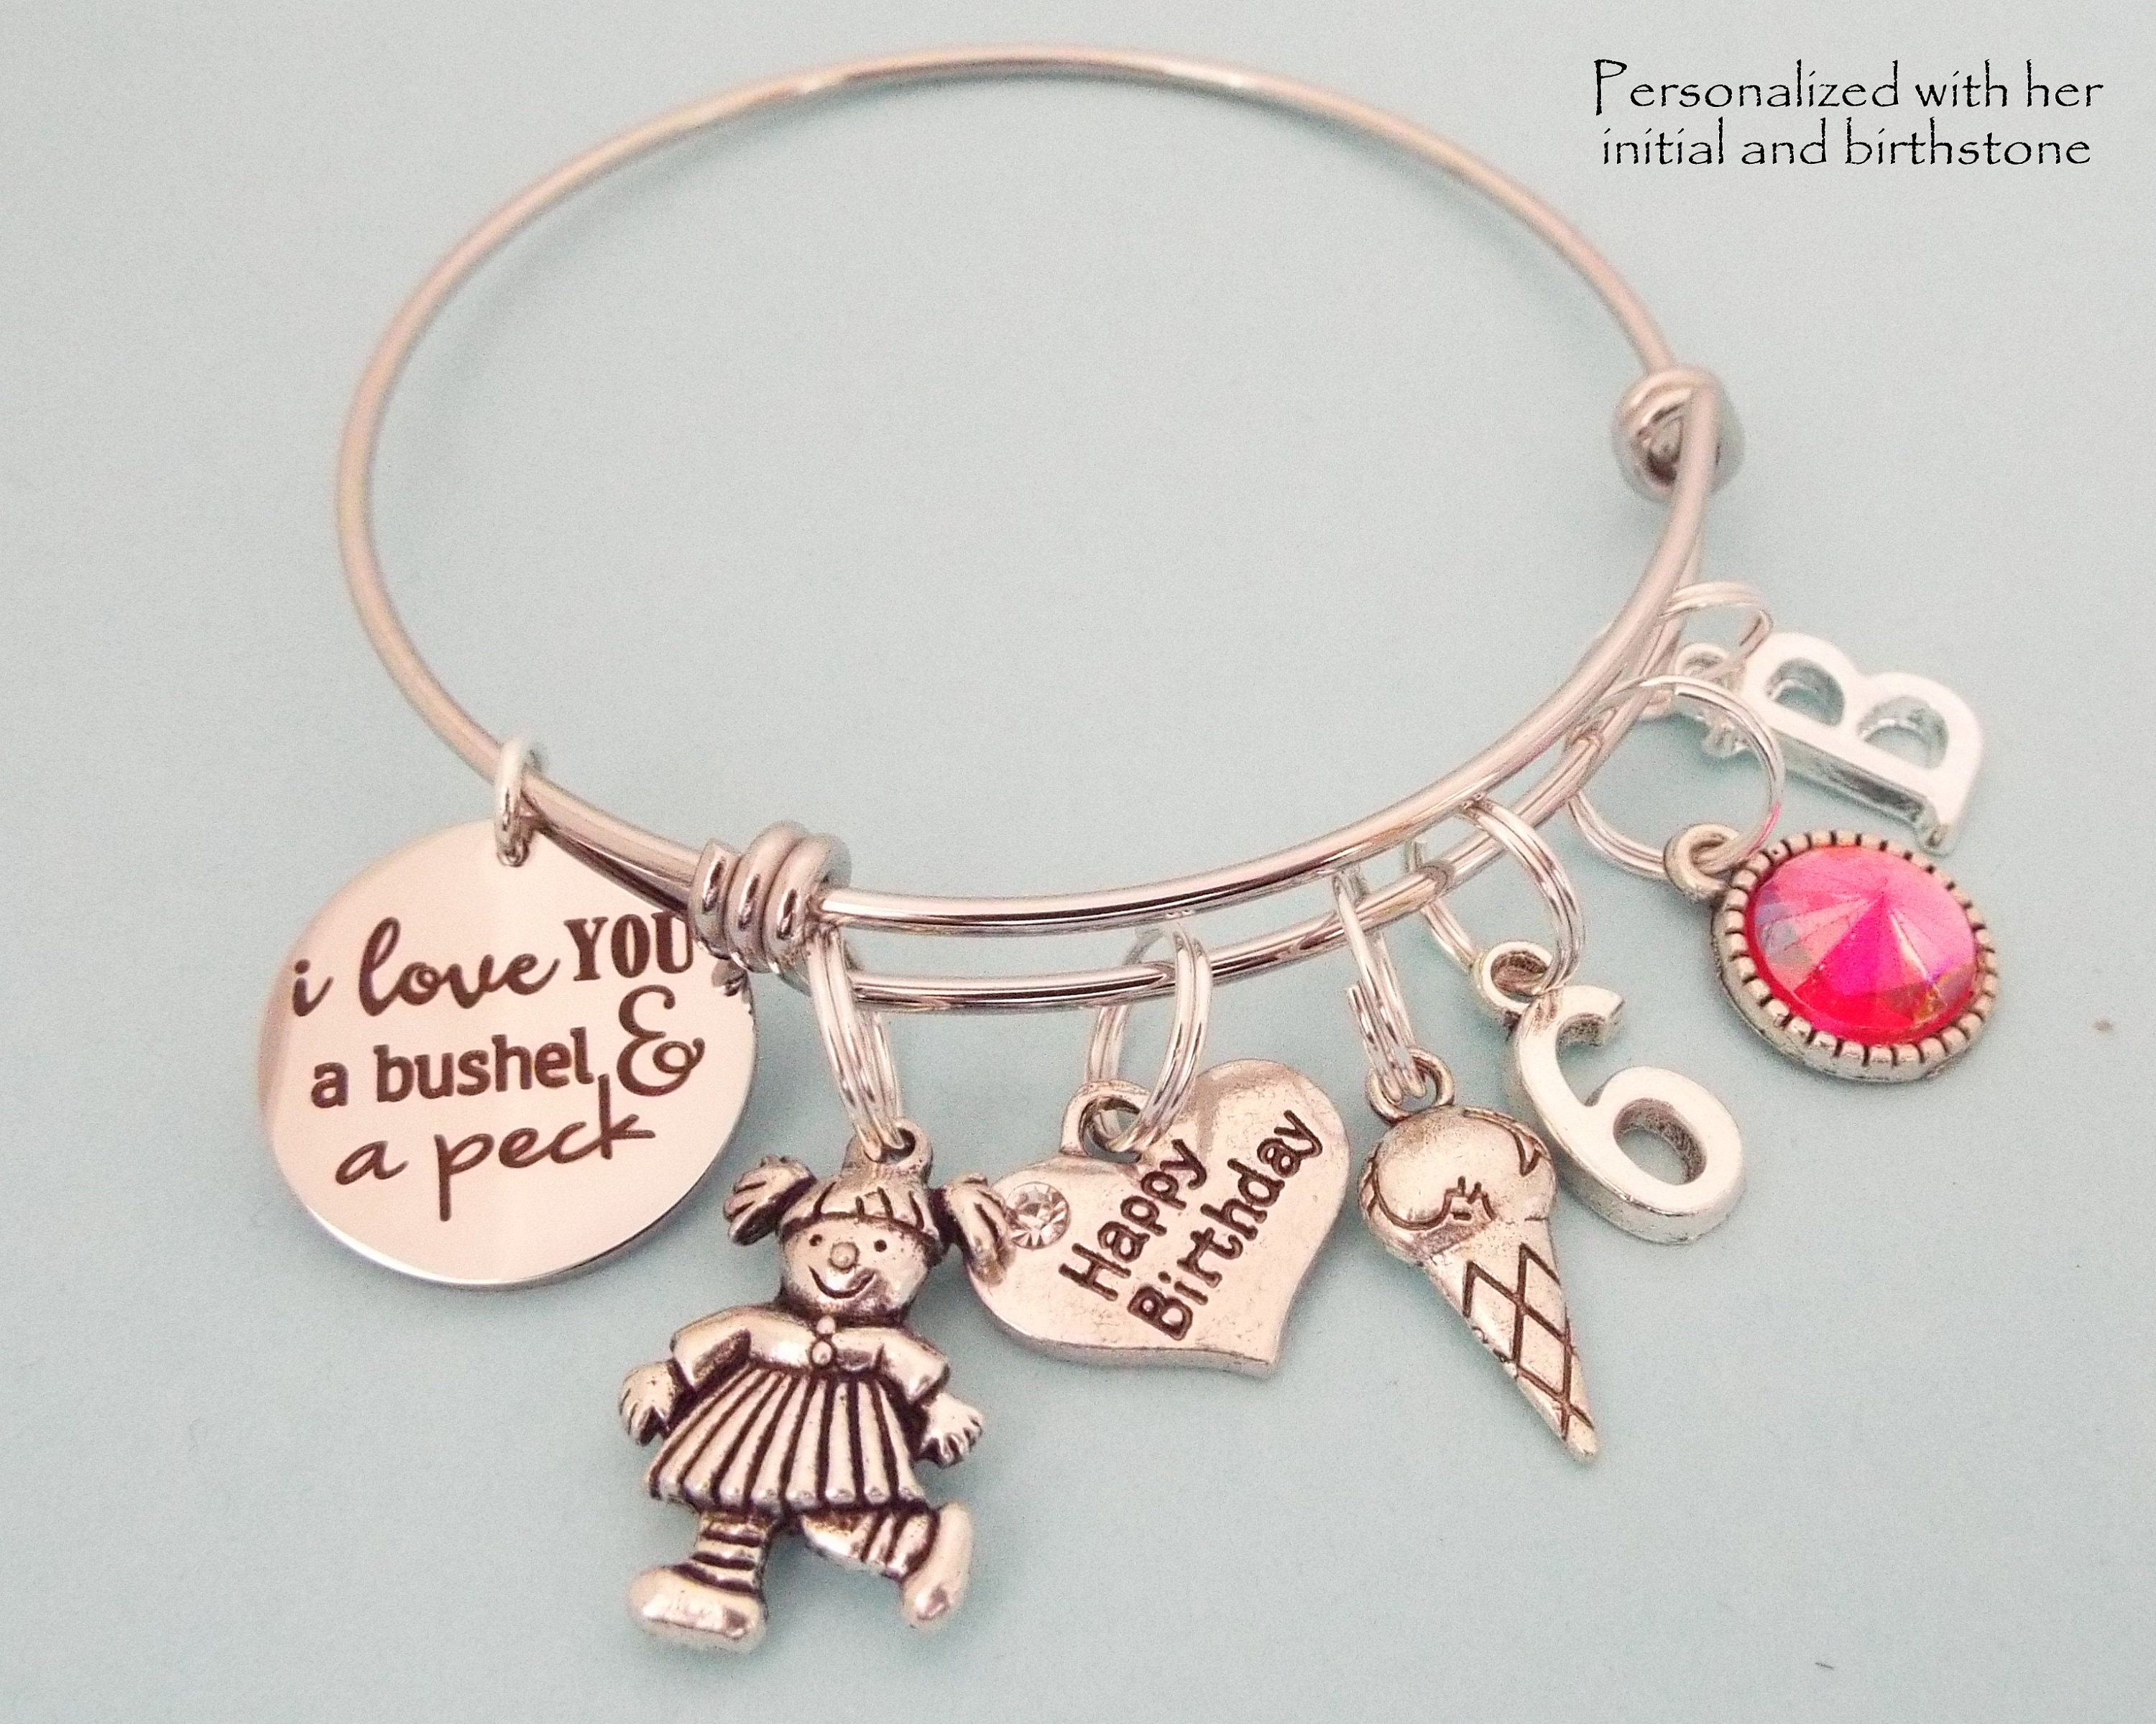 6 Years Old Childrens Birthday Childs Jewelry Personalized For Her Granddaughter Gift Gallery Photo